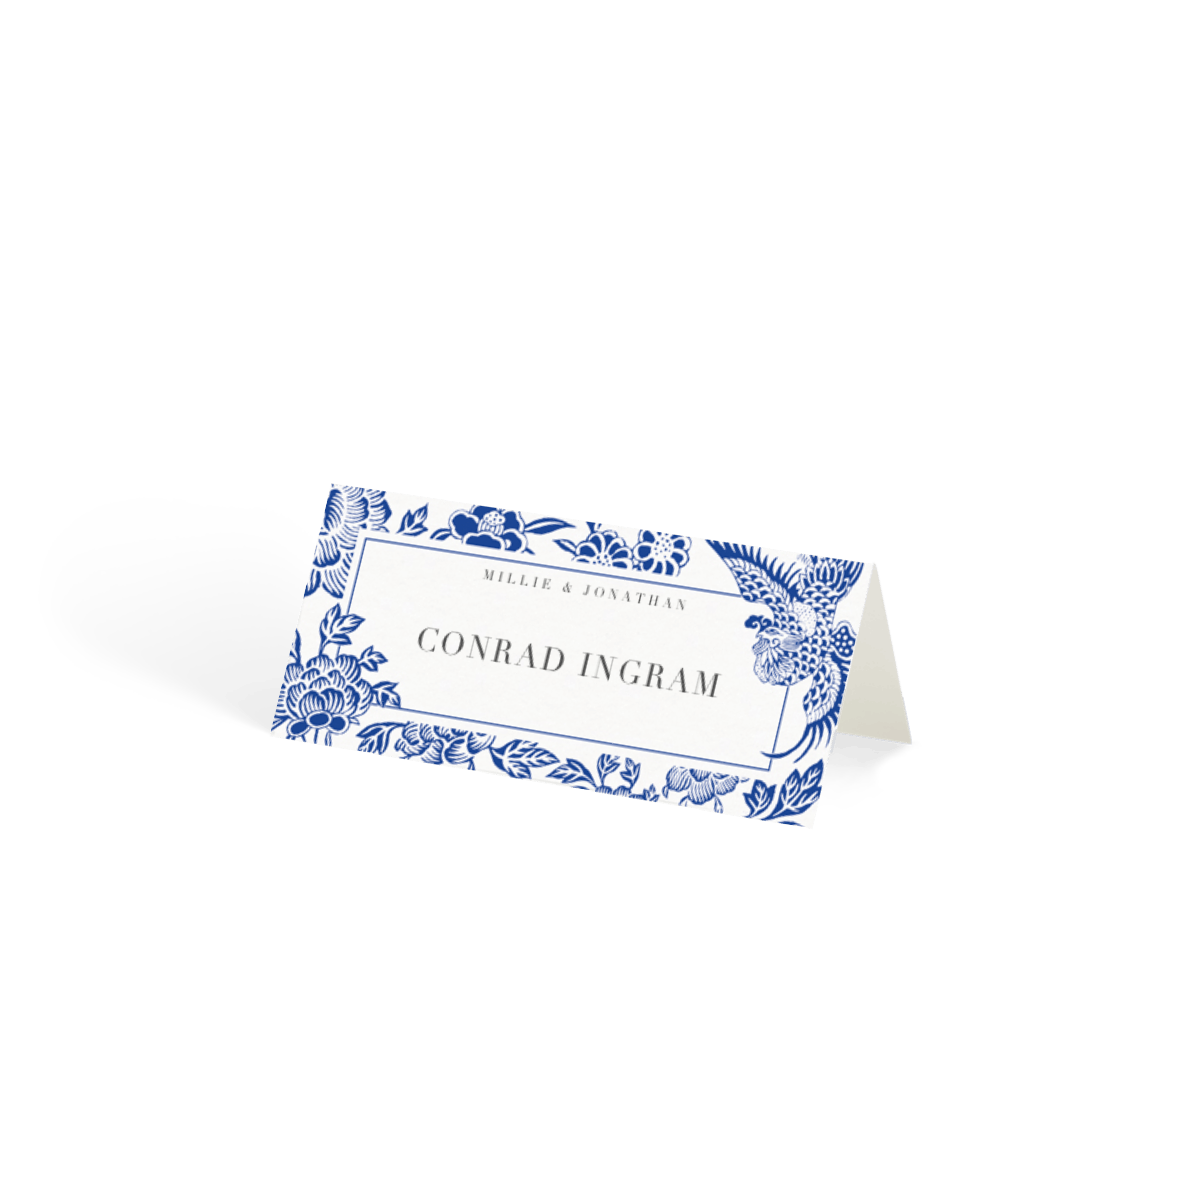 Https%3a%2f%2fwww.papier.com%2fproduct image%2f81463%2f8%2fornate blue florals 19560 front 1561976680.png?ixlib=rb 1.1